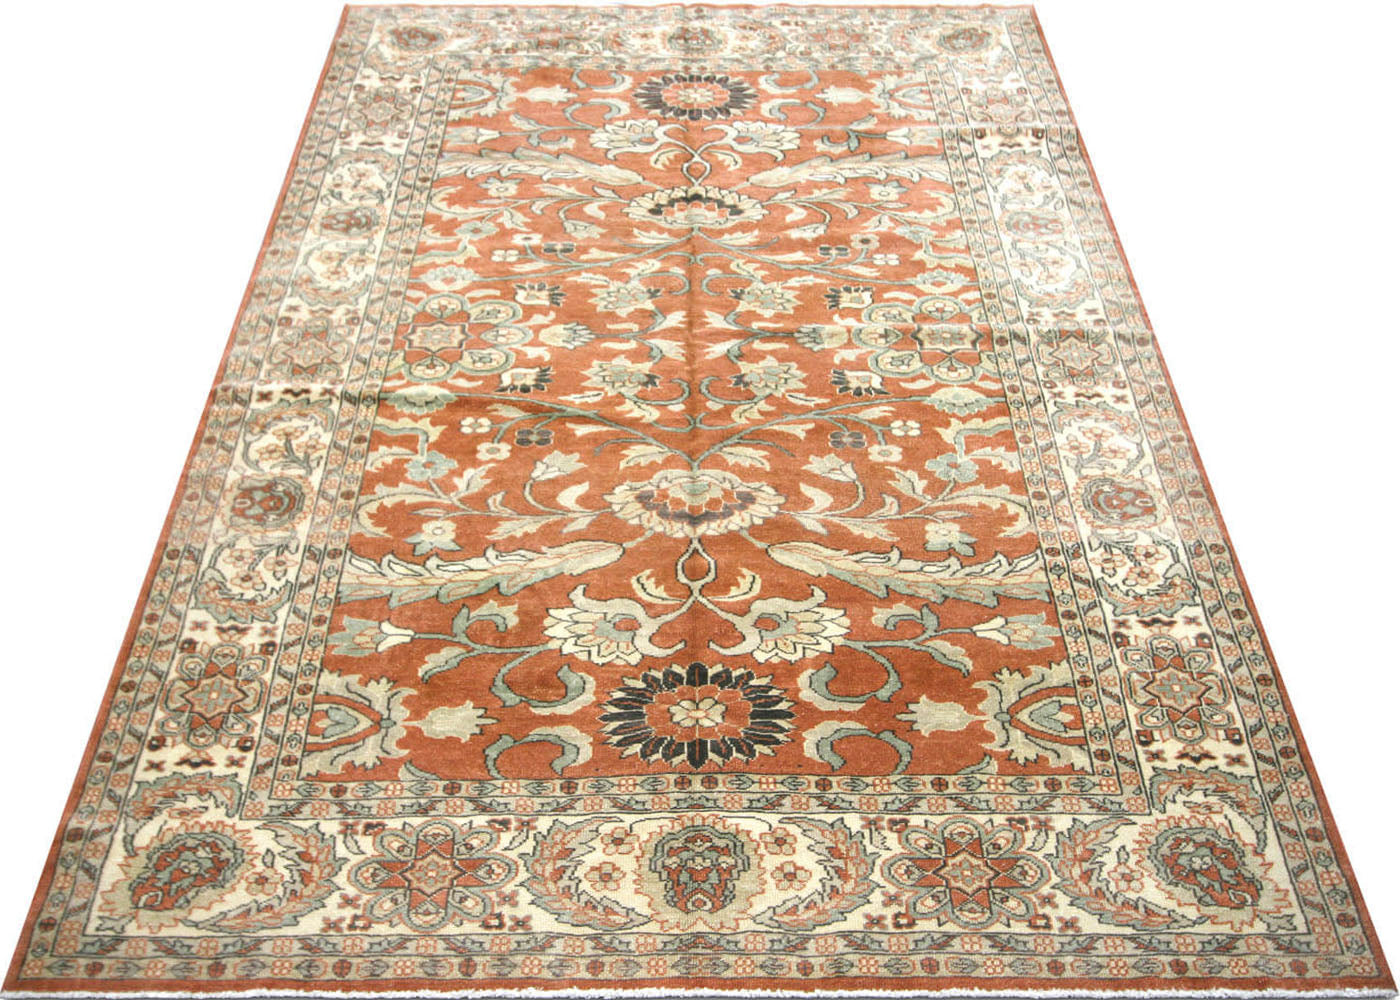 "Recently Woven Egyptian Sultanabad Rug - 6'1"" x 8'9"""